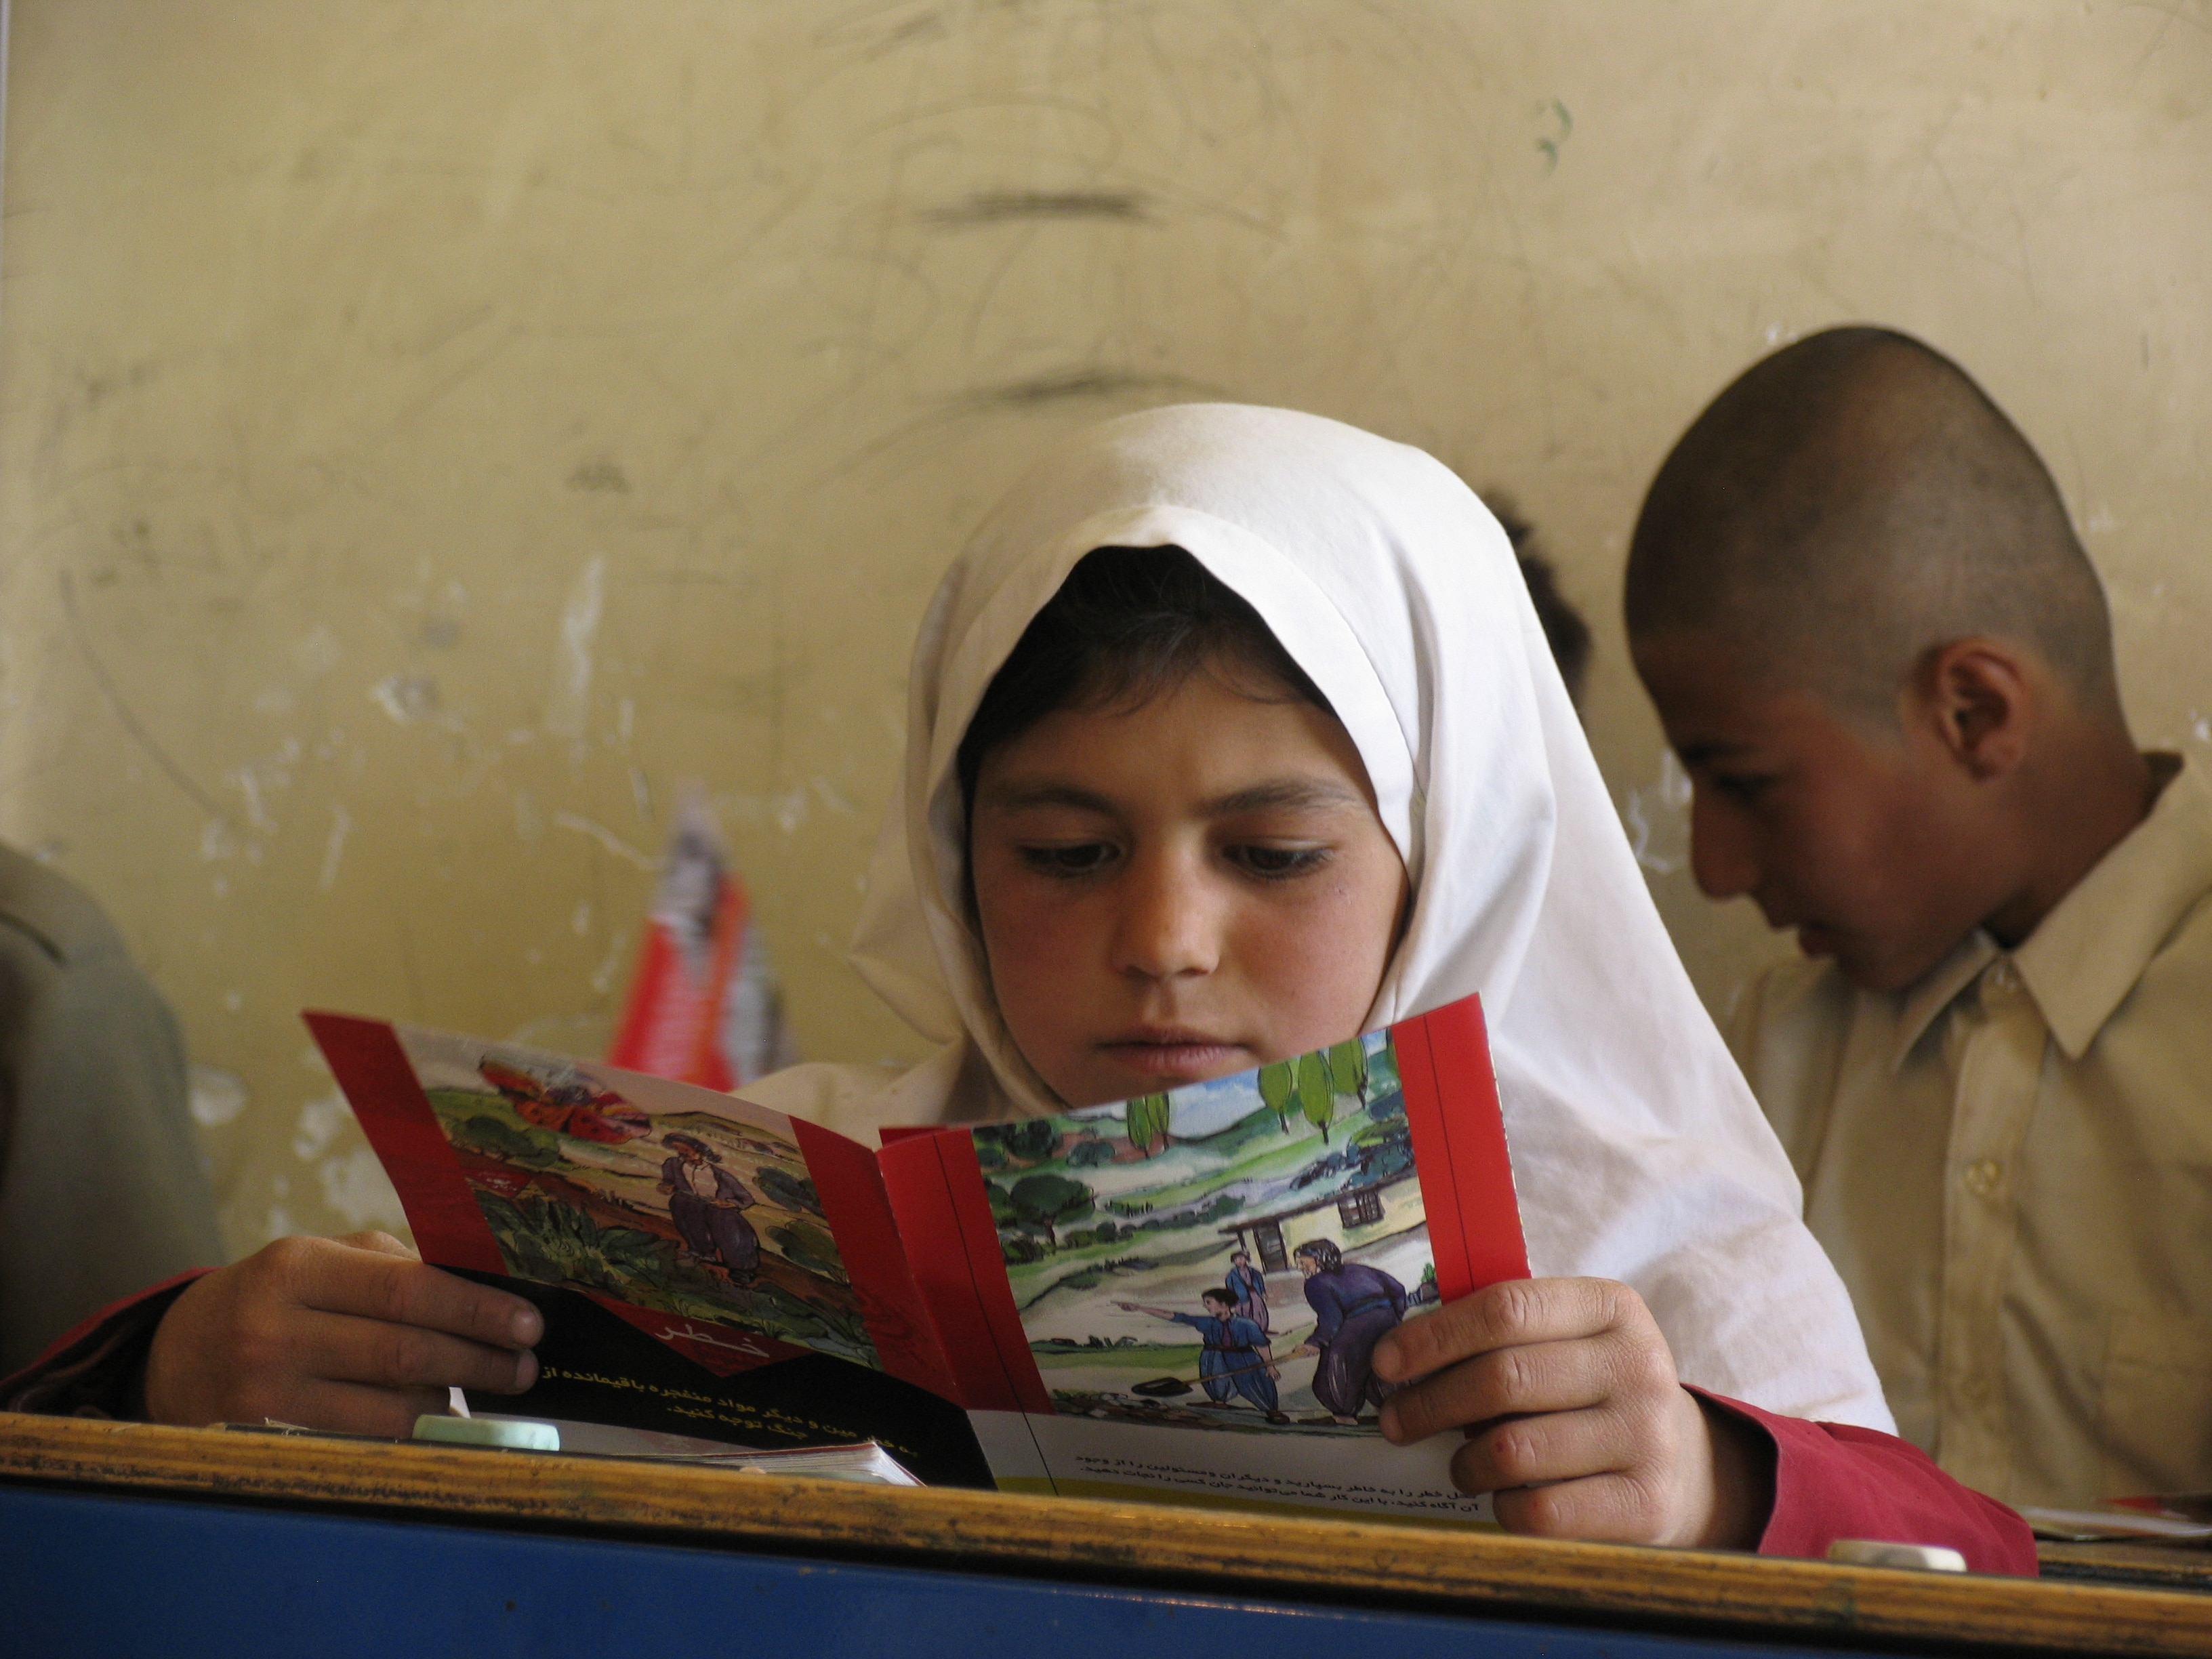 Divan Dare village, Kurdistan Province, Iran. Mine risk education session for schoolchildren. (©ICRC/N. Dadbin)